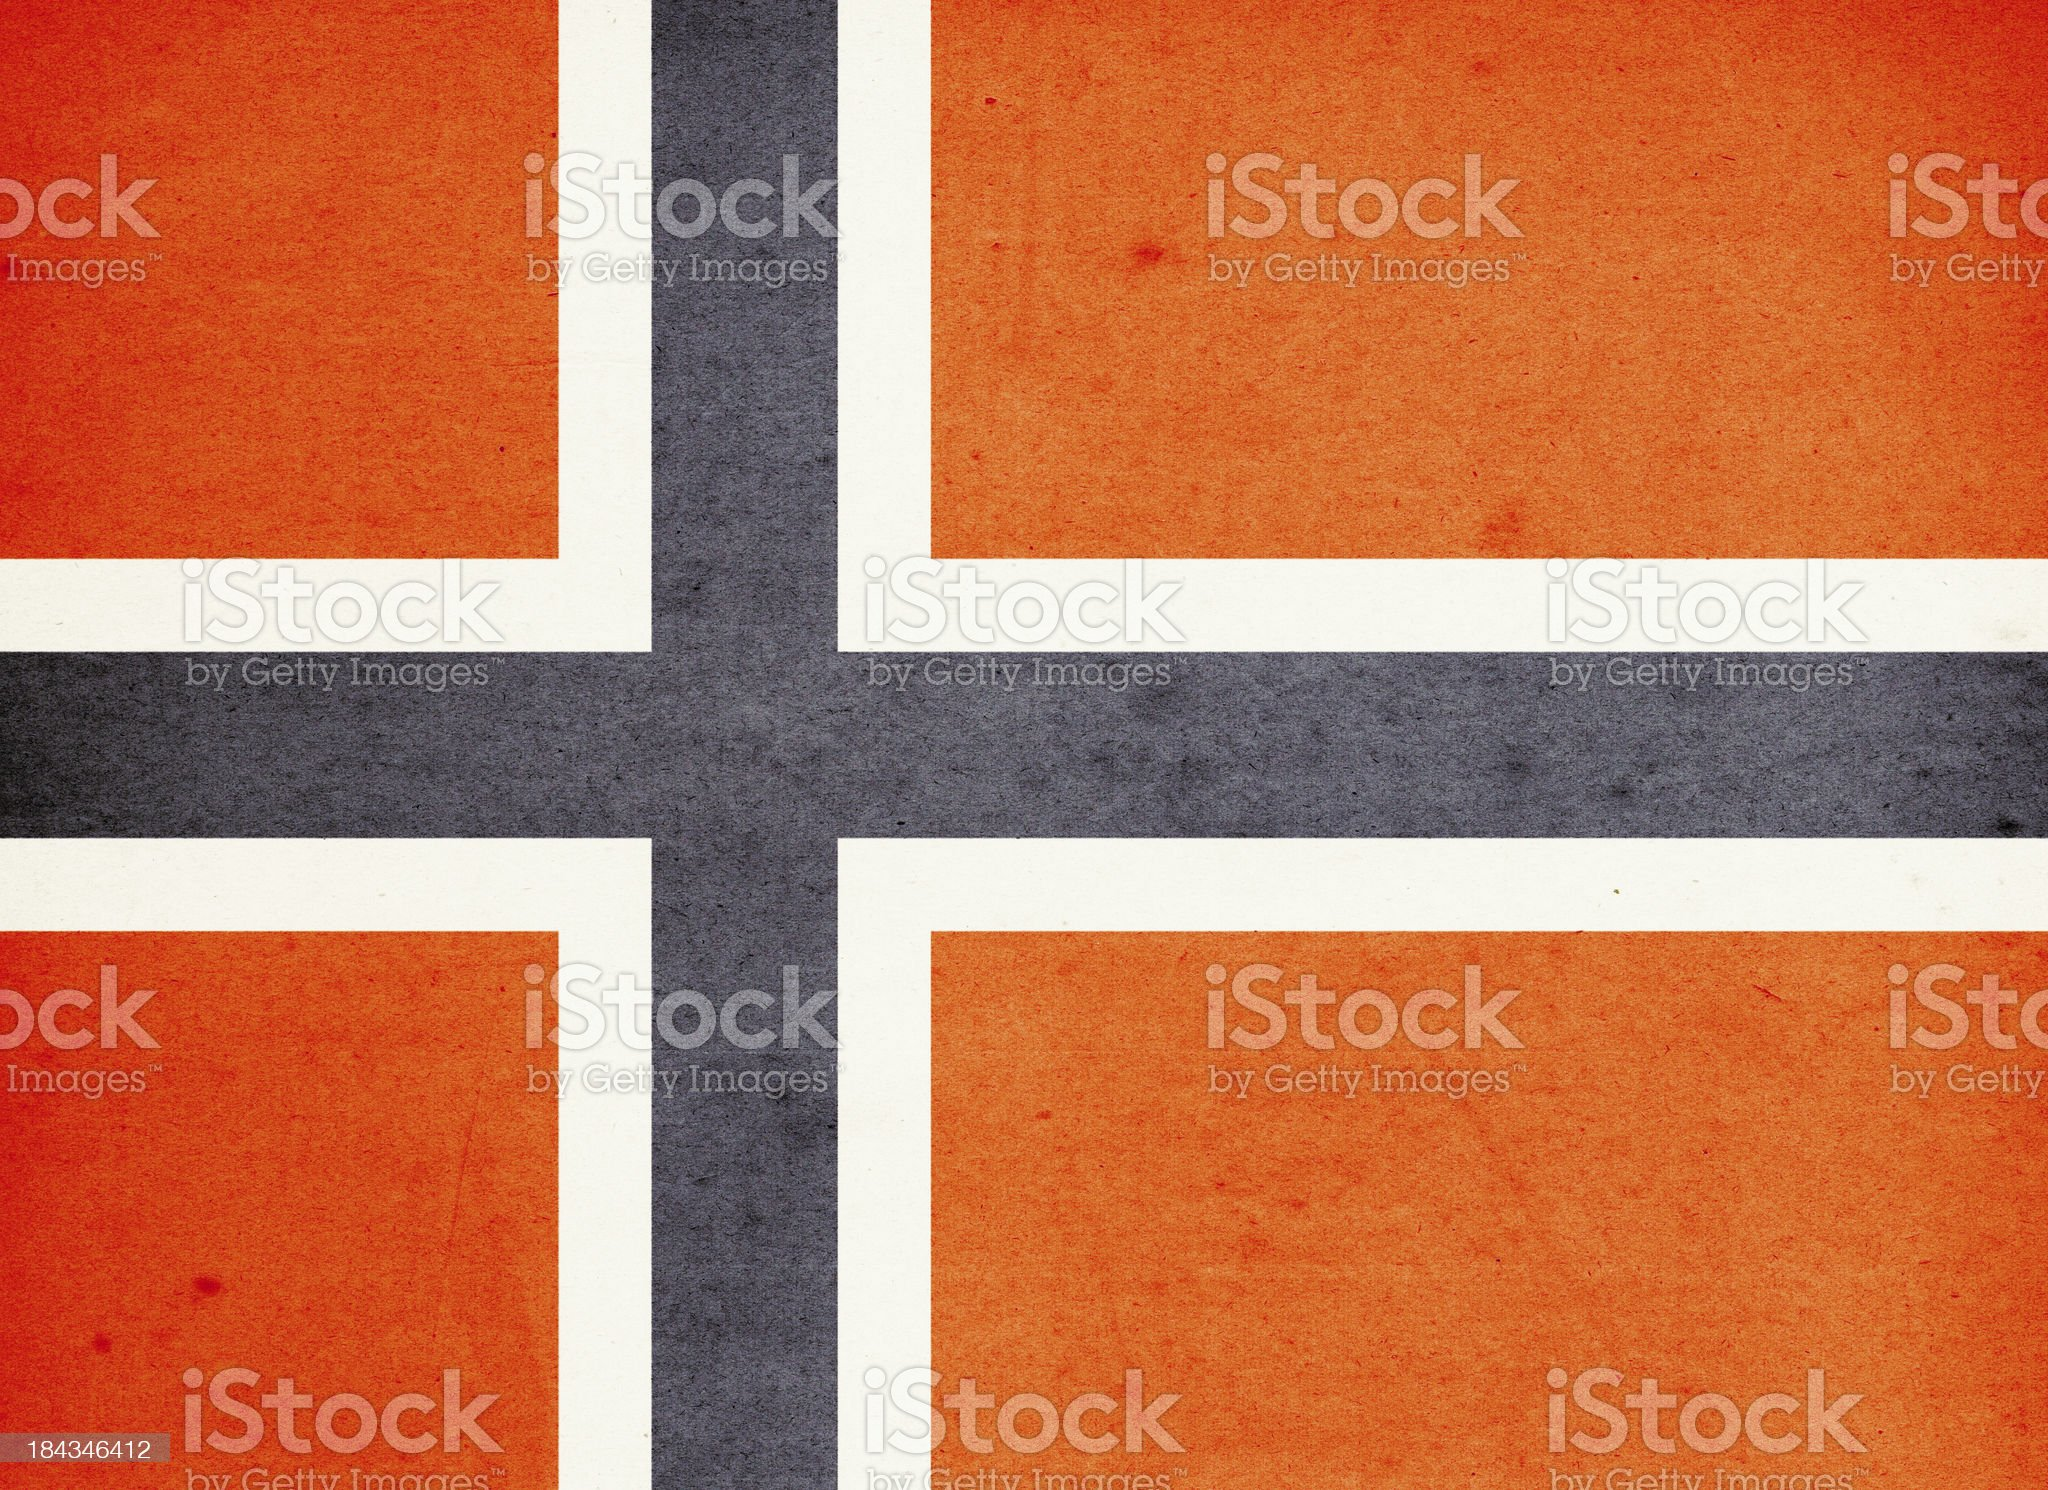 Flag of Norway Close-Up (High Resolution Image) royalty-free stock photo